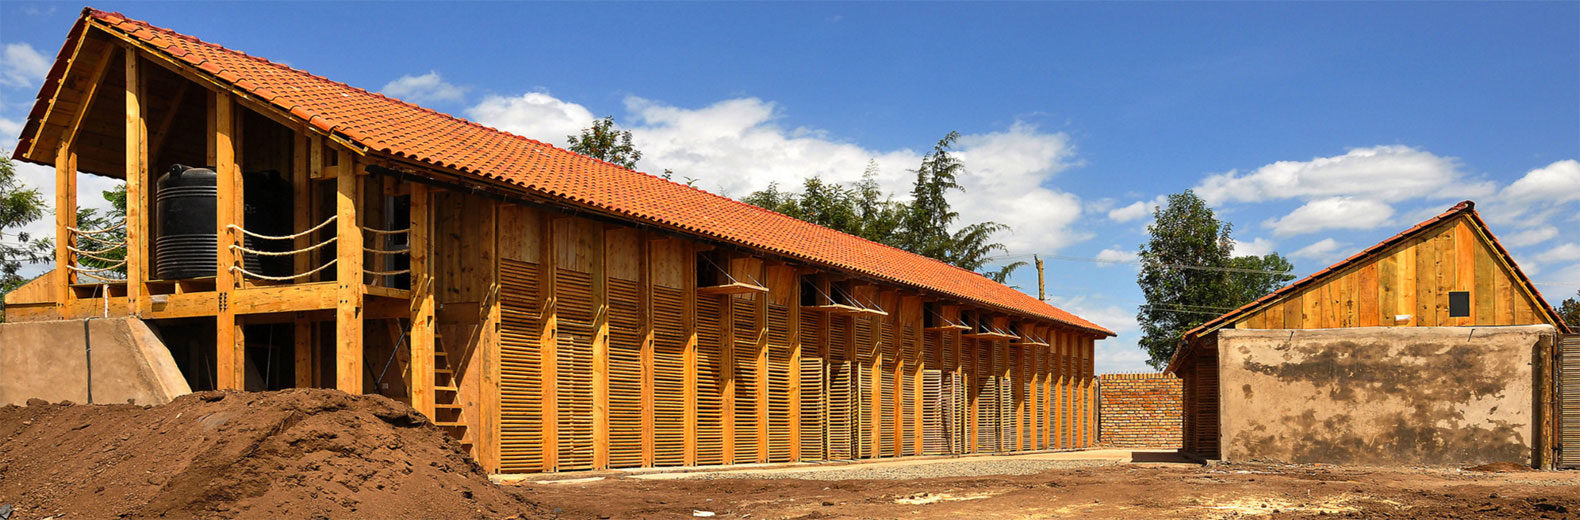 8 earth homes almost anyone can afford to build for Adobe house construction cost